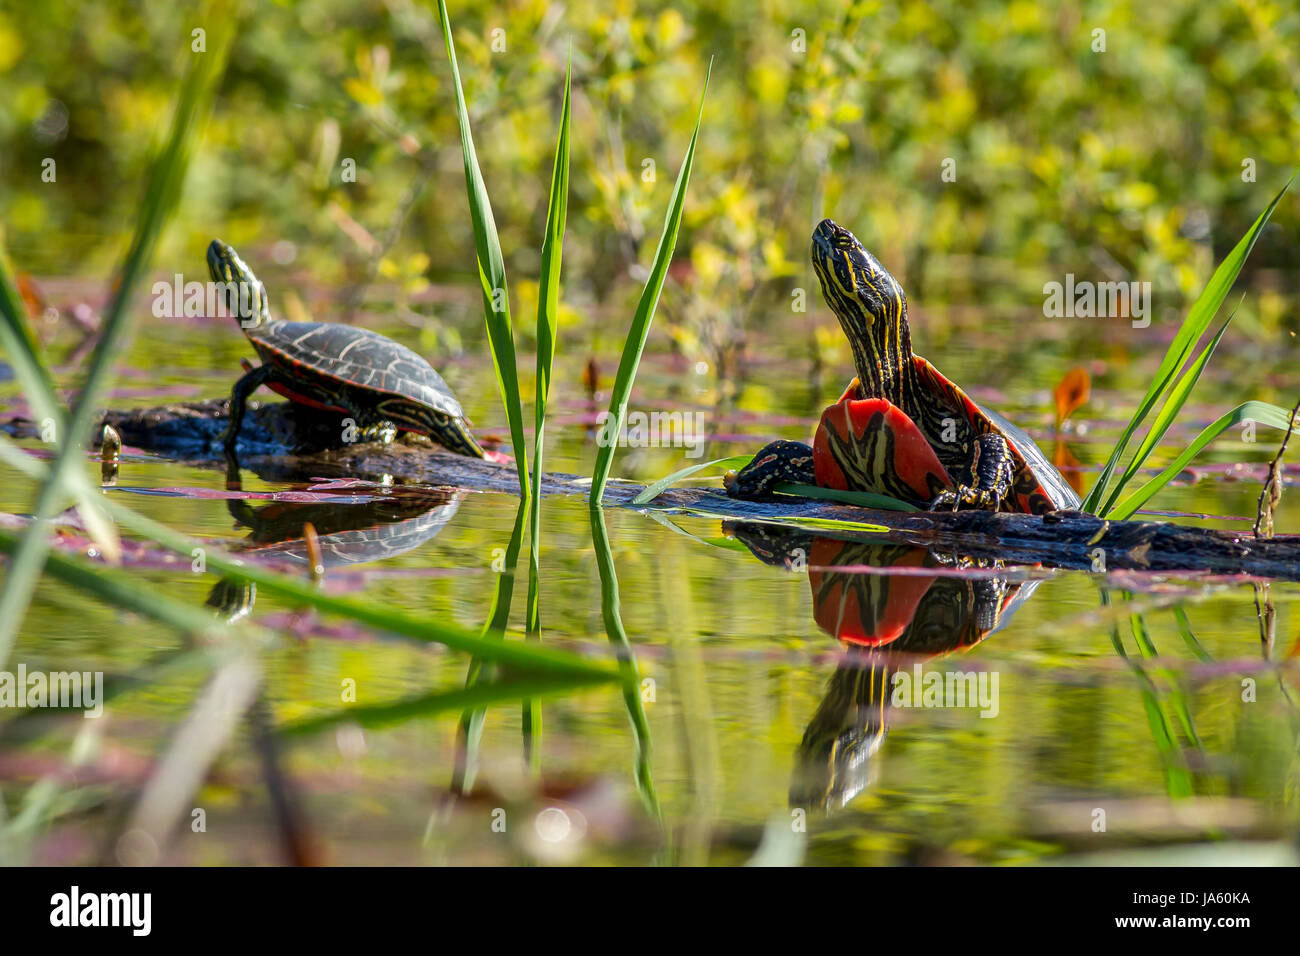 Two painted turtles basking in the sun on a log in Twin Lakes, Idahi. - Stock Image